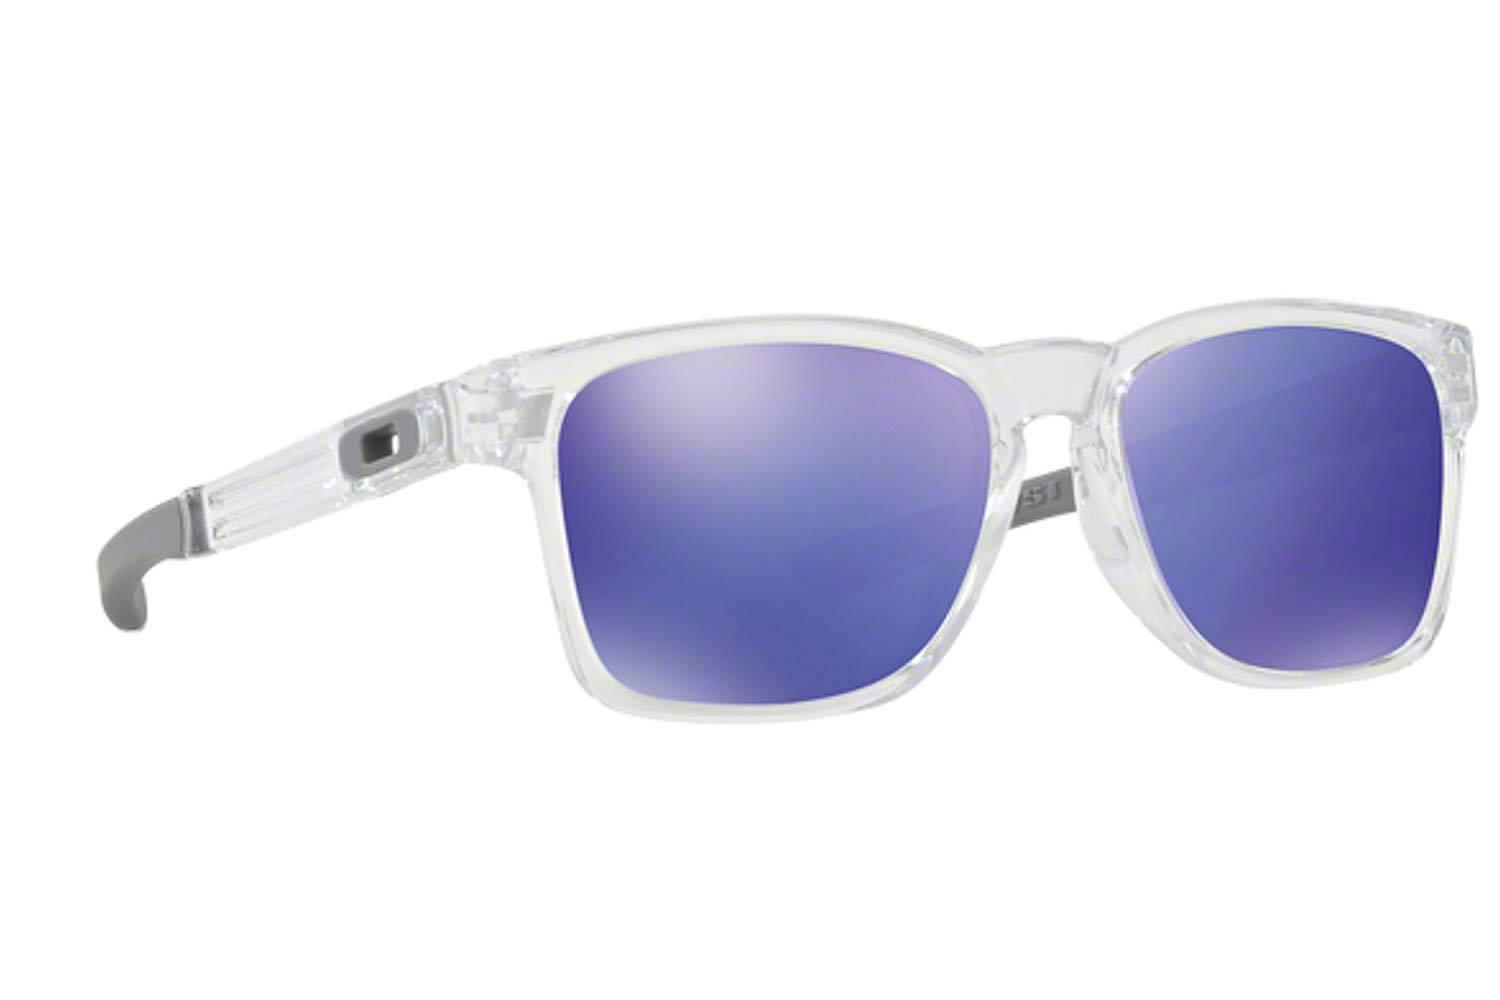 4a8f5cb5d3 SUNGLASSES Oakley CATALYST 9272 05 Clear Violet Irid